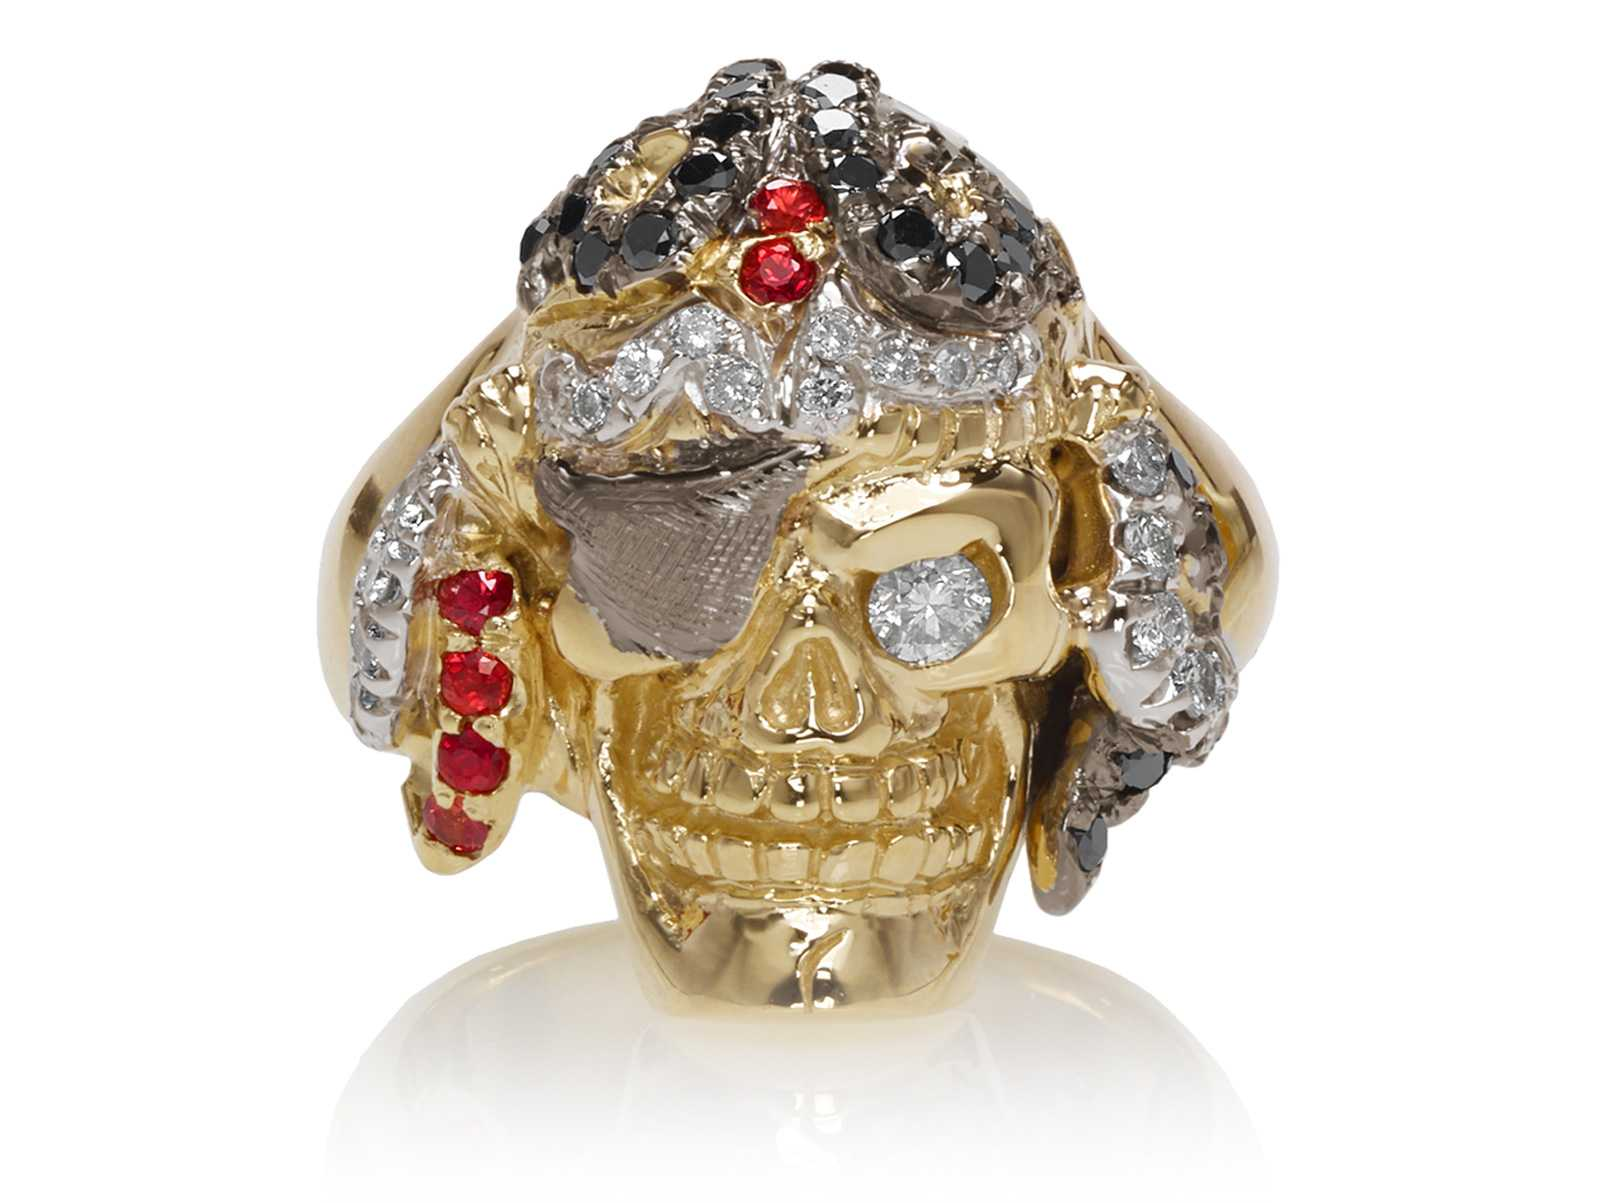 RG1042 Captain Morgan Men's Pirate Skull Ring (Front View) in Yellow Gold with White and Black Diamonds, with Orange Sapphires, designed by Steve Soffa